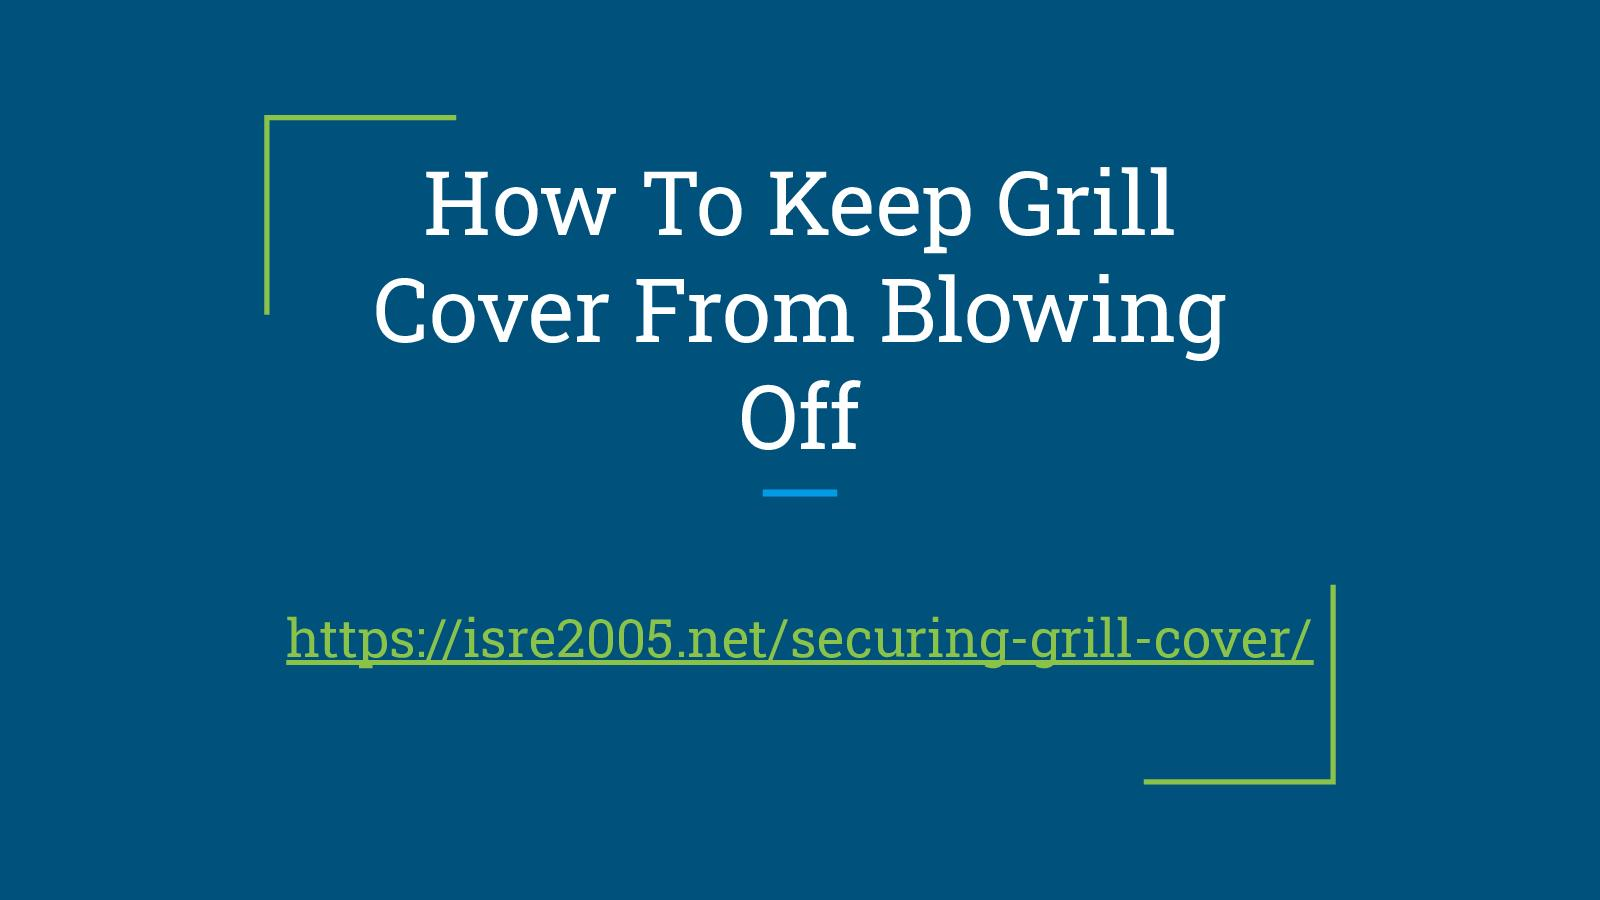 How To Keep Grill Cover From Blowing Off